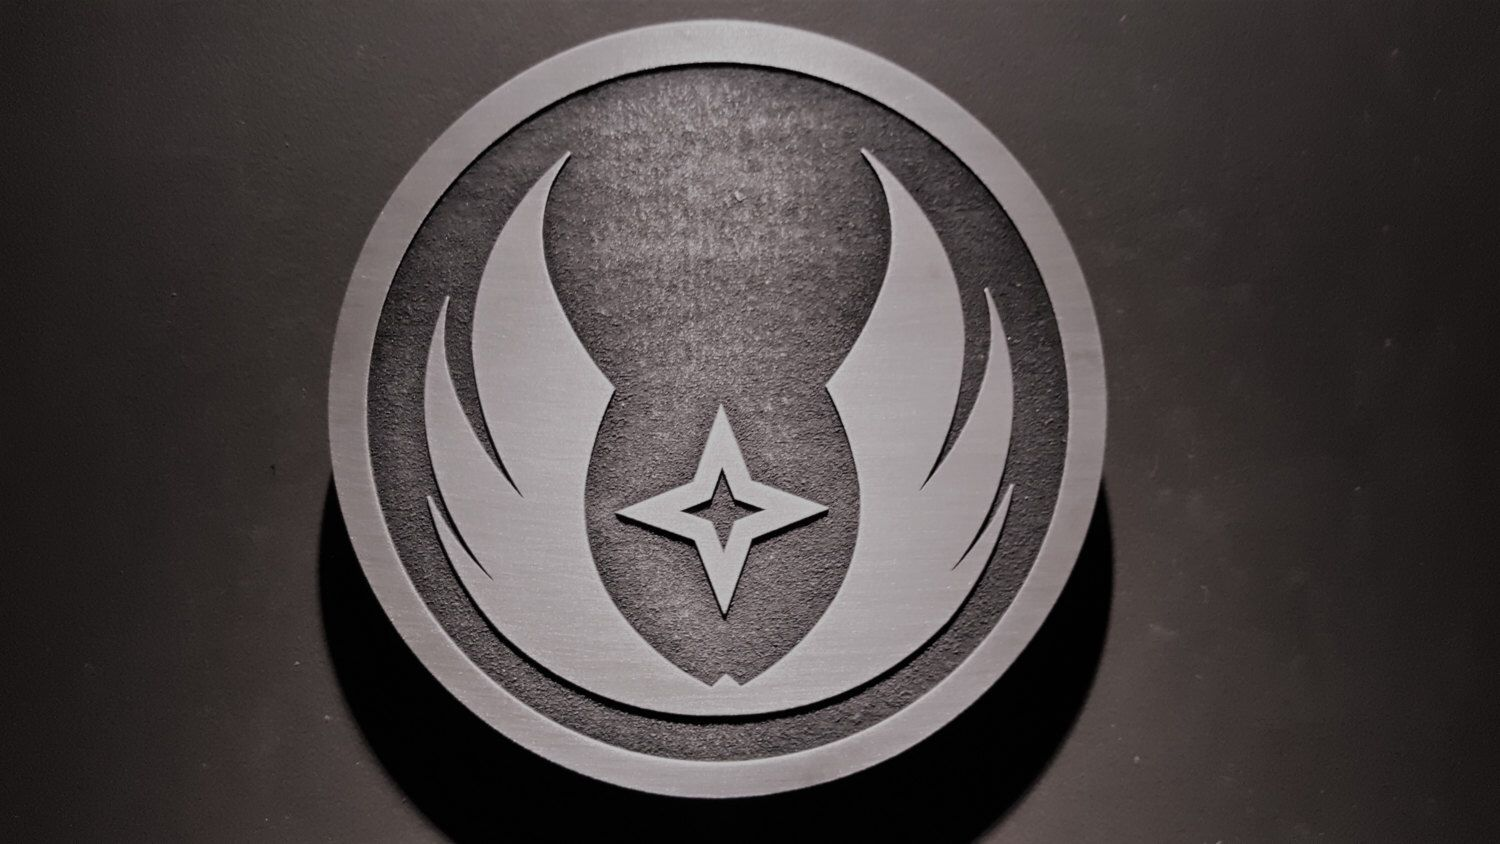 Star Wars Gray Jedi Order Plaque Sign In 2020 Grey Jedi Star Wars Background Grey Jedi Symbol